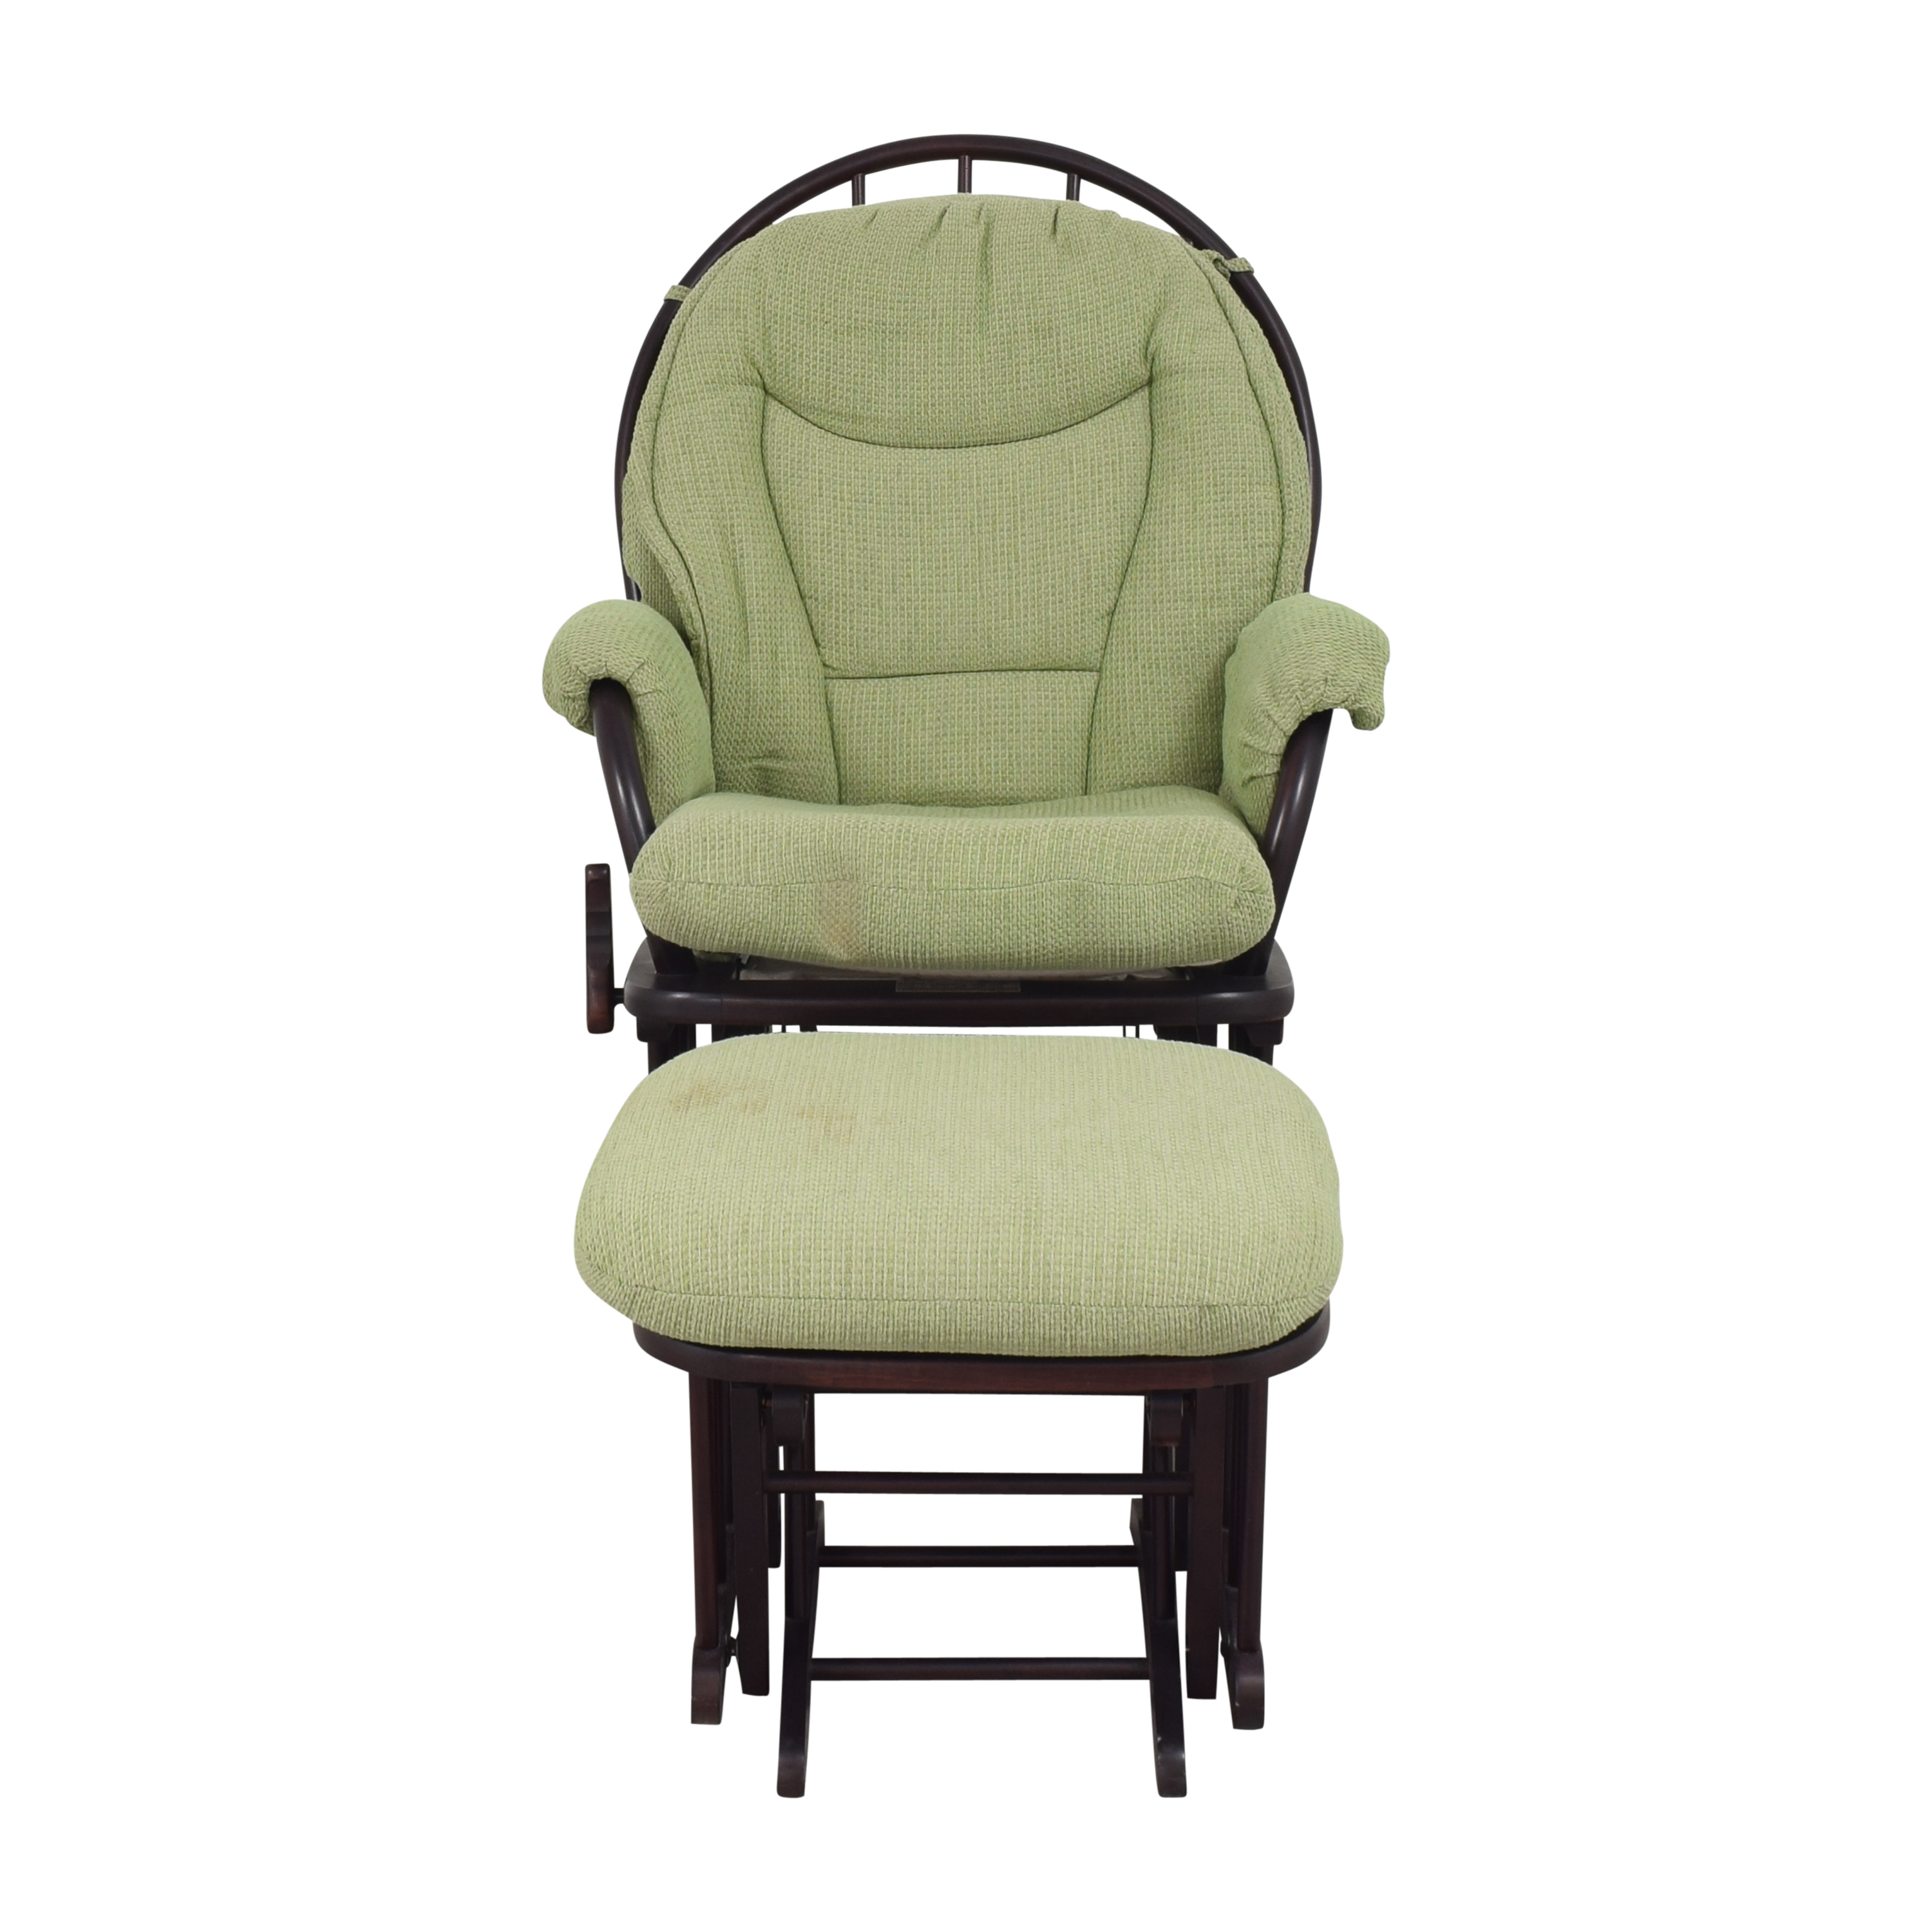 Dutailier Dutailier Glider Chair with Ottoman Chairs